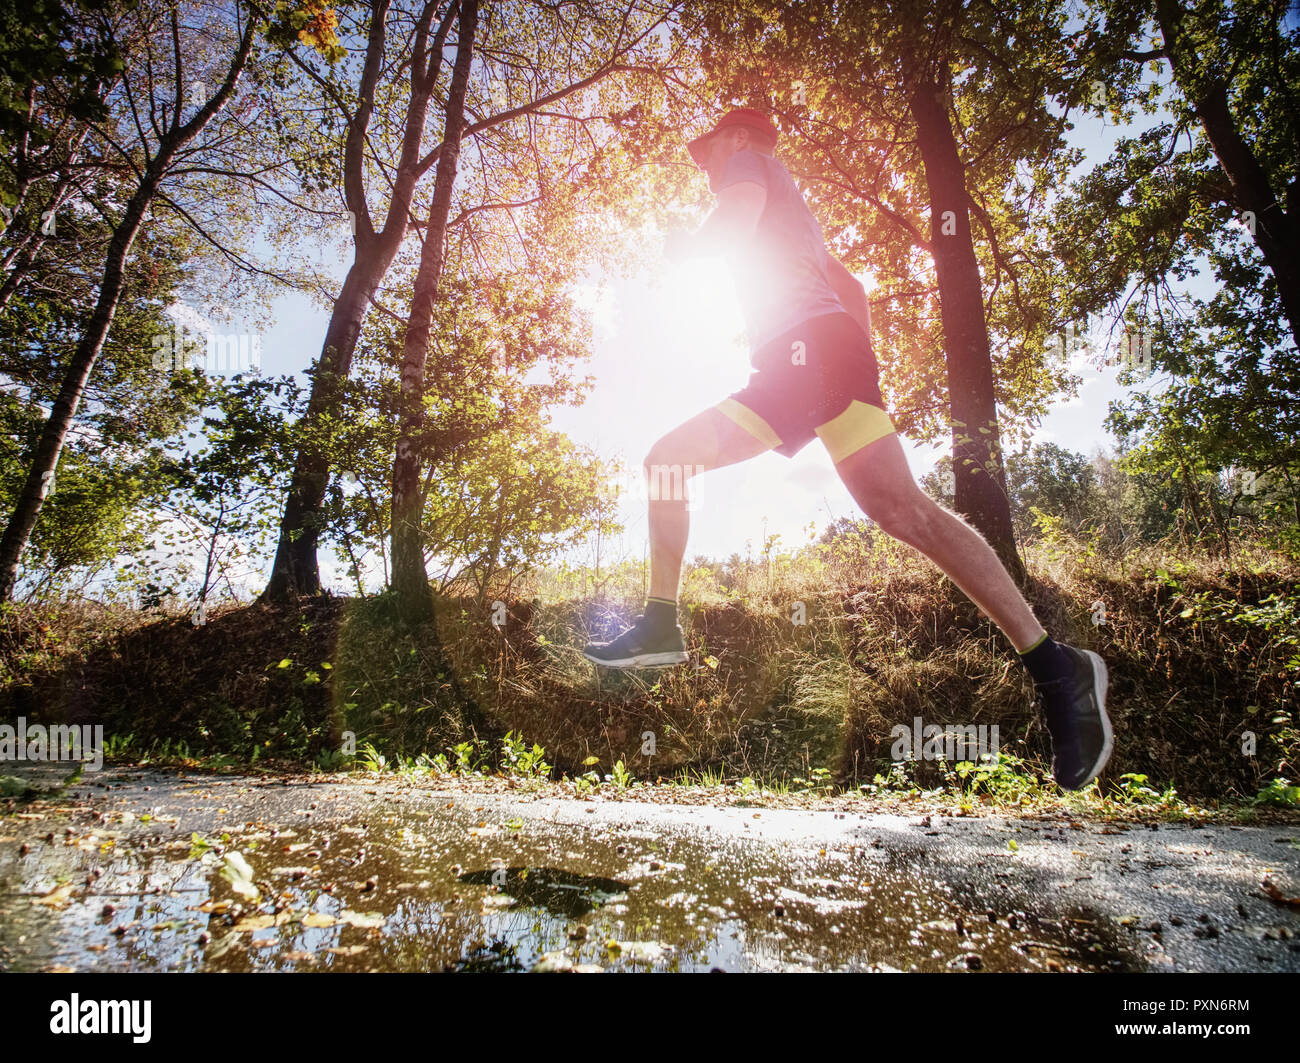 Jogging tall sports man in trees shadows with sun light behind him while wearing black yellow shorts and blue jogging attire - Stock Image